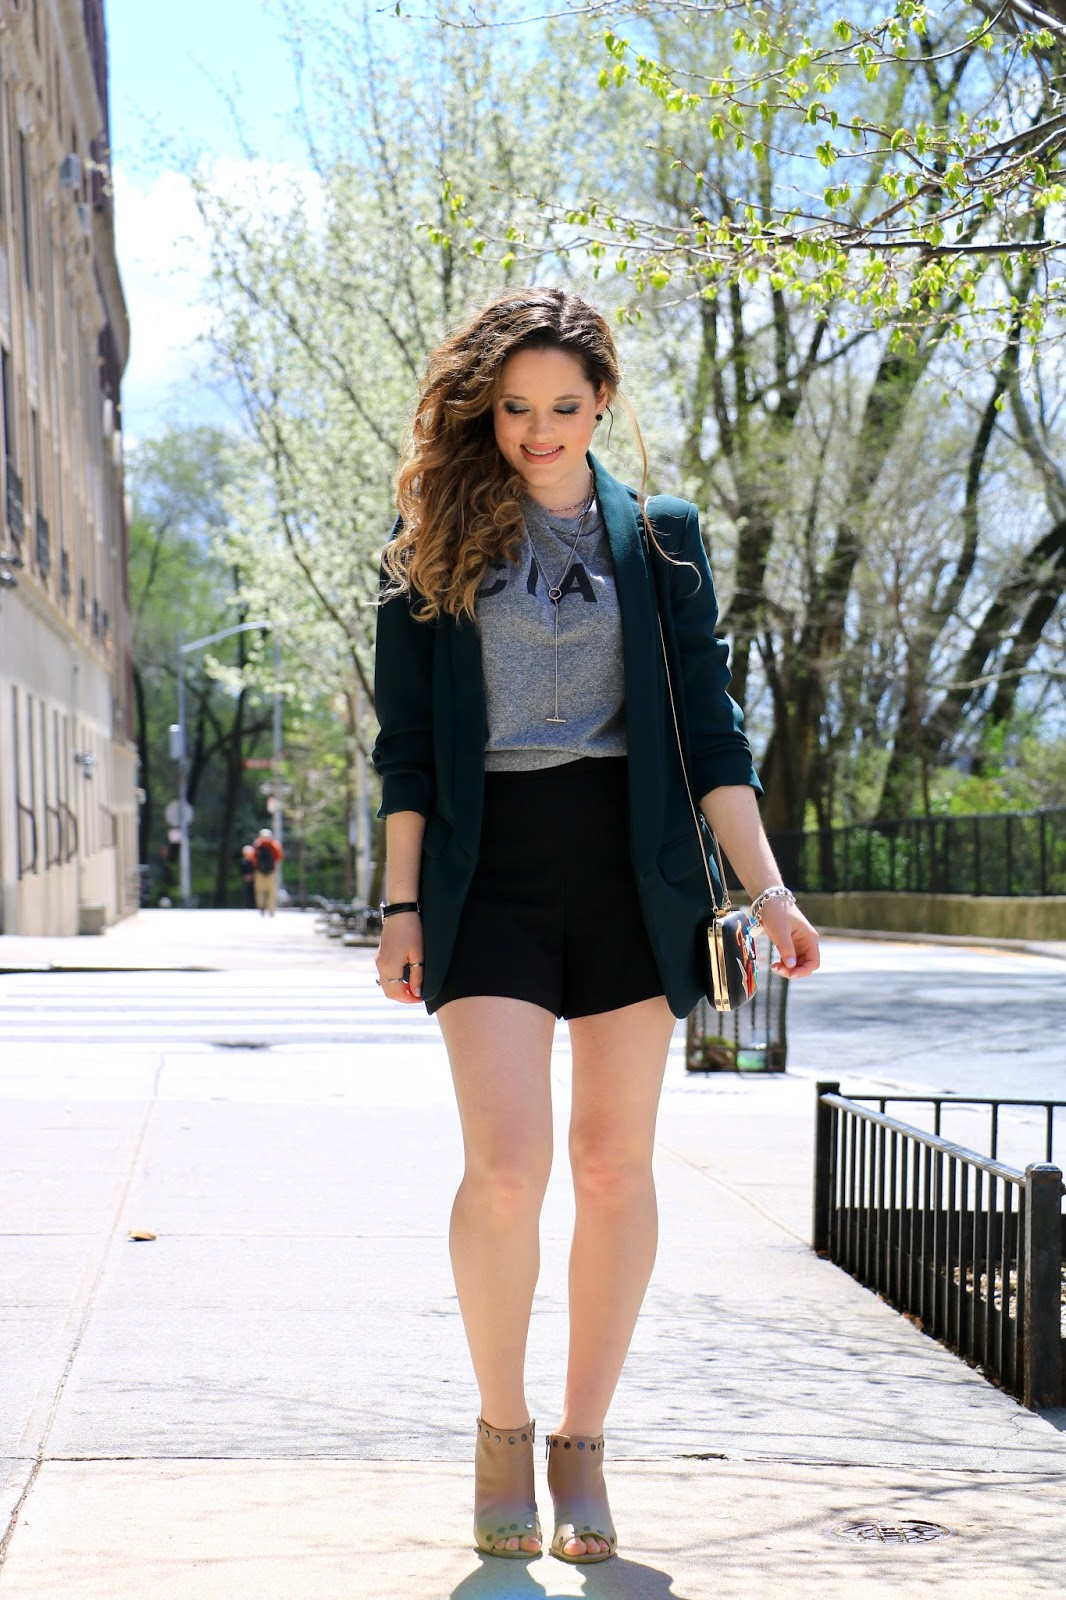 Nyc fashion blogger Kathleen Harper's spring street style with shorts and blazer